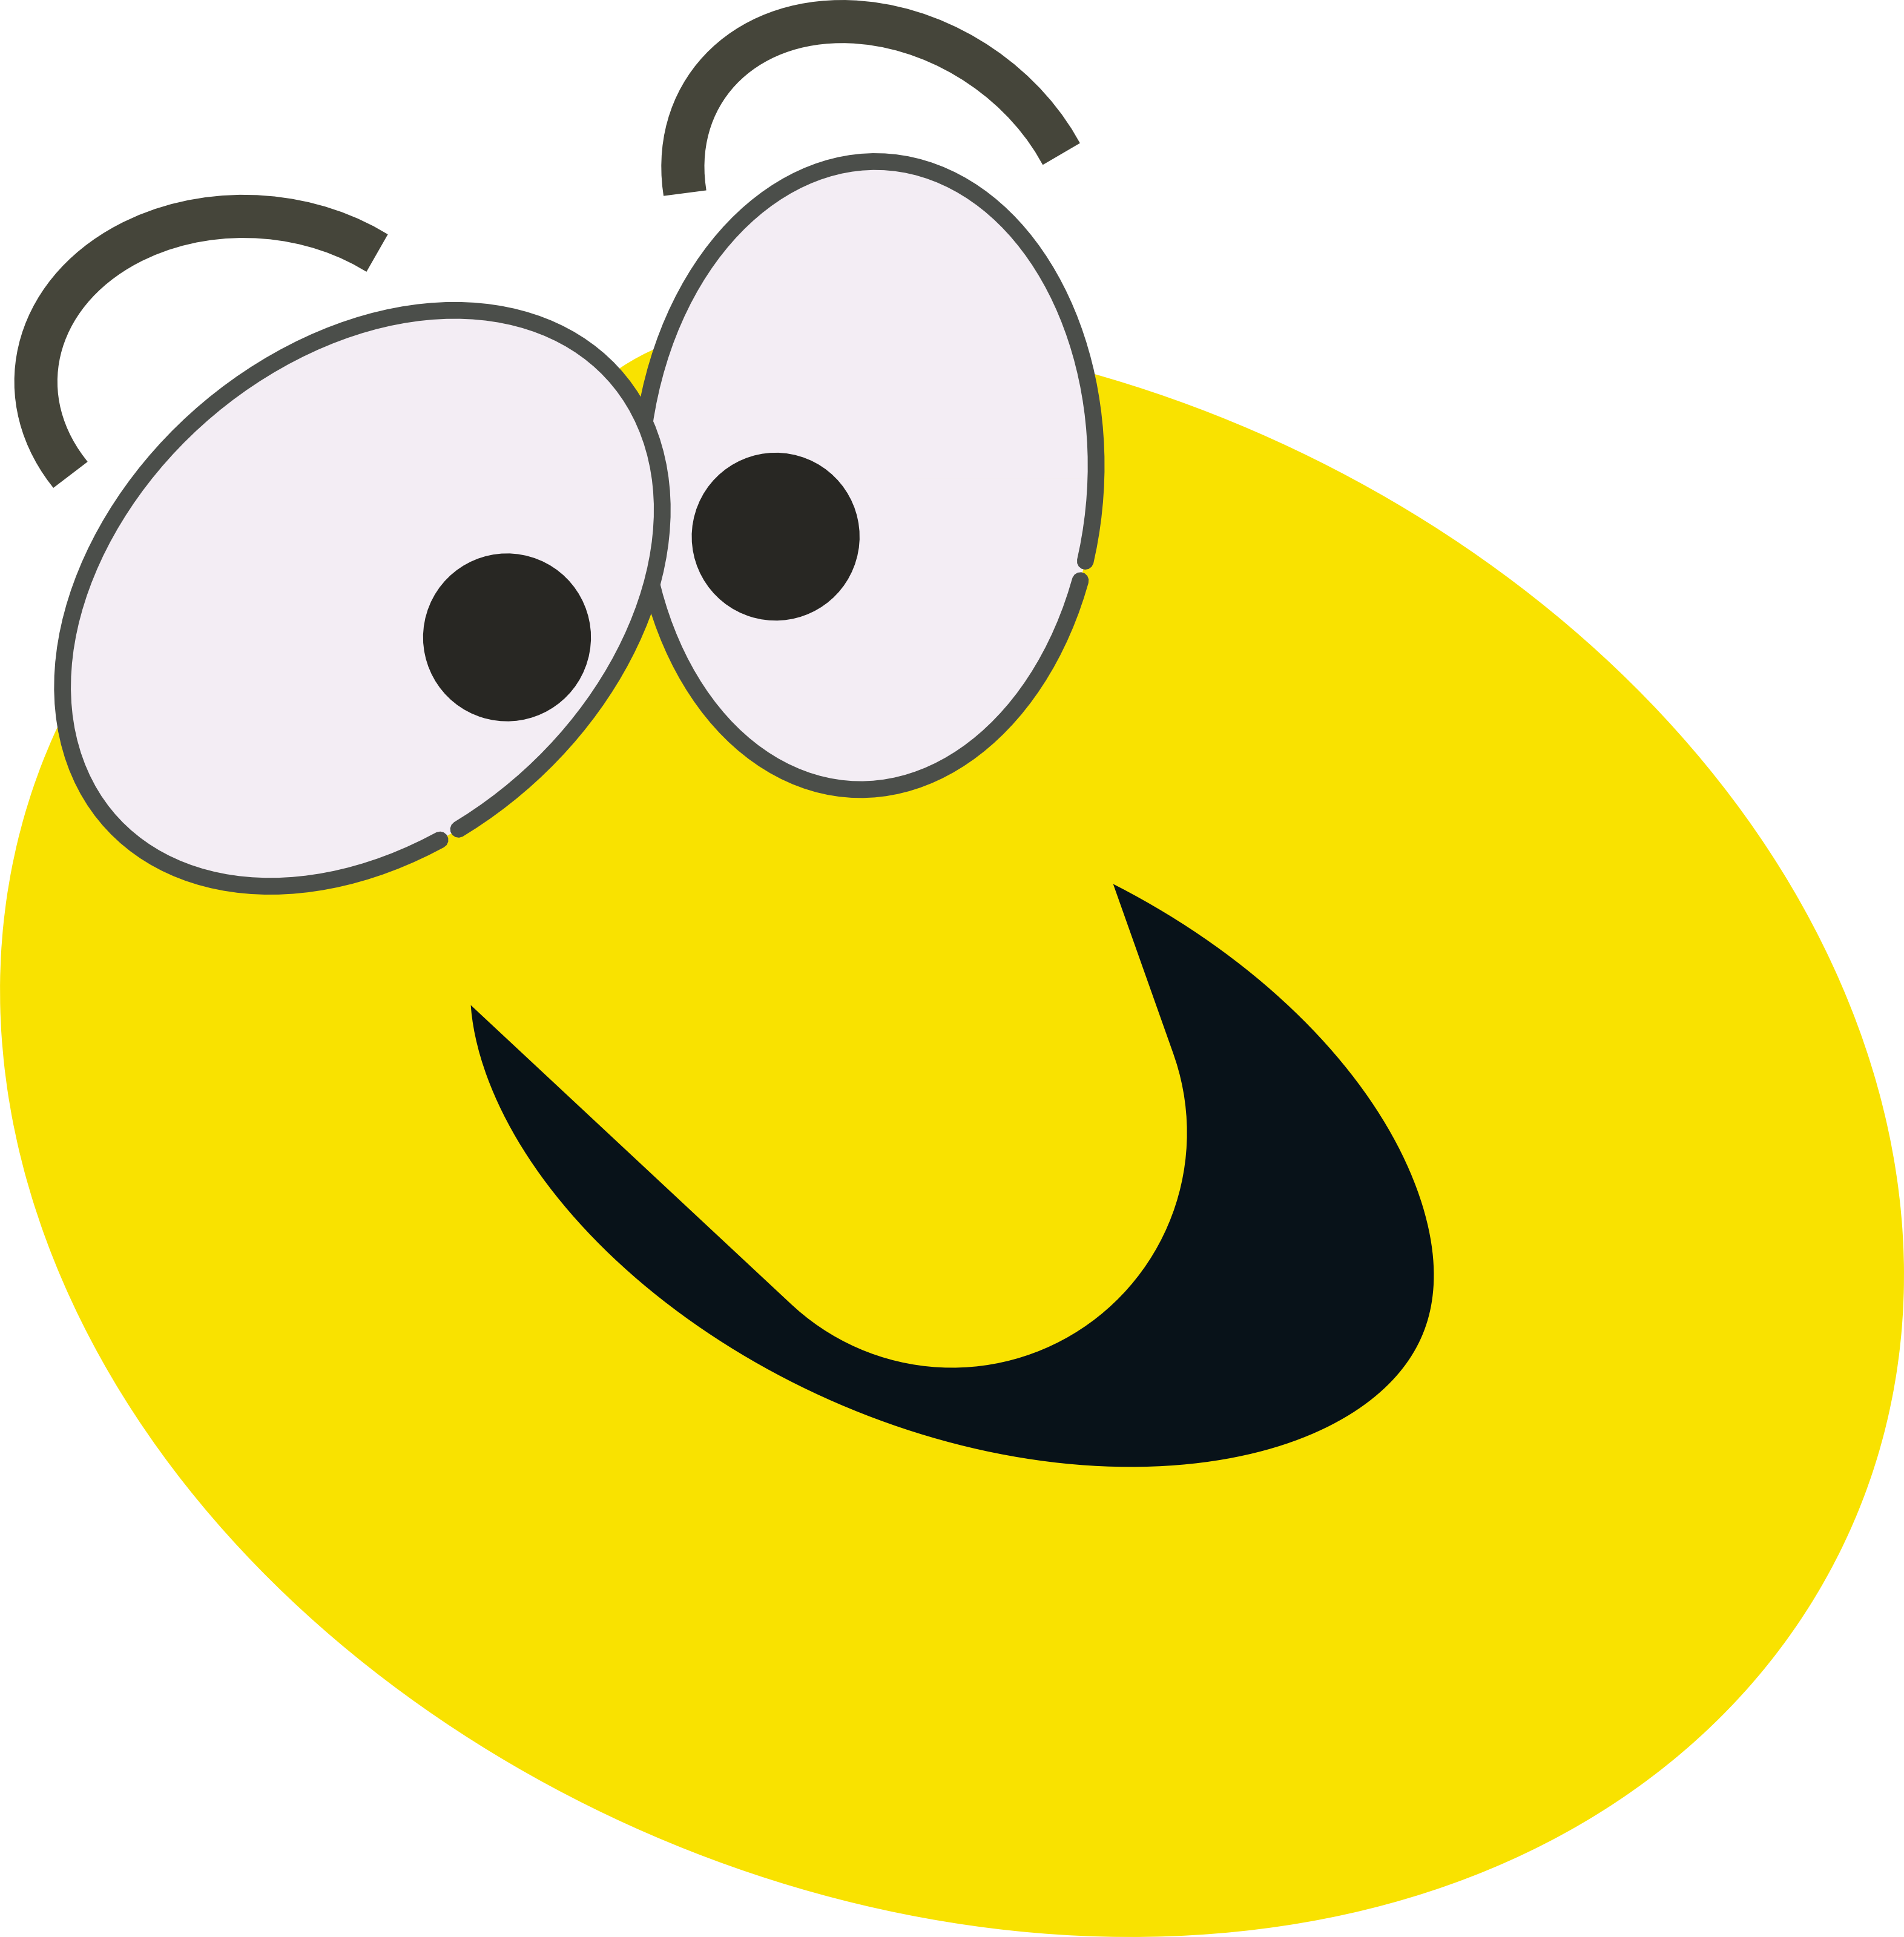 Animated Clipart Free U0026middot; Carto-animated clipart free u0026middot; cartoon clipart free u0026middot; clipart smiley face-19